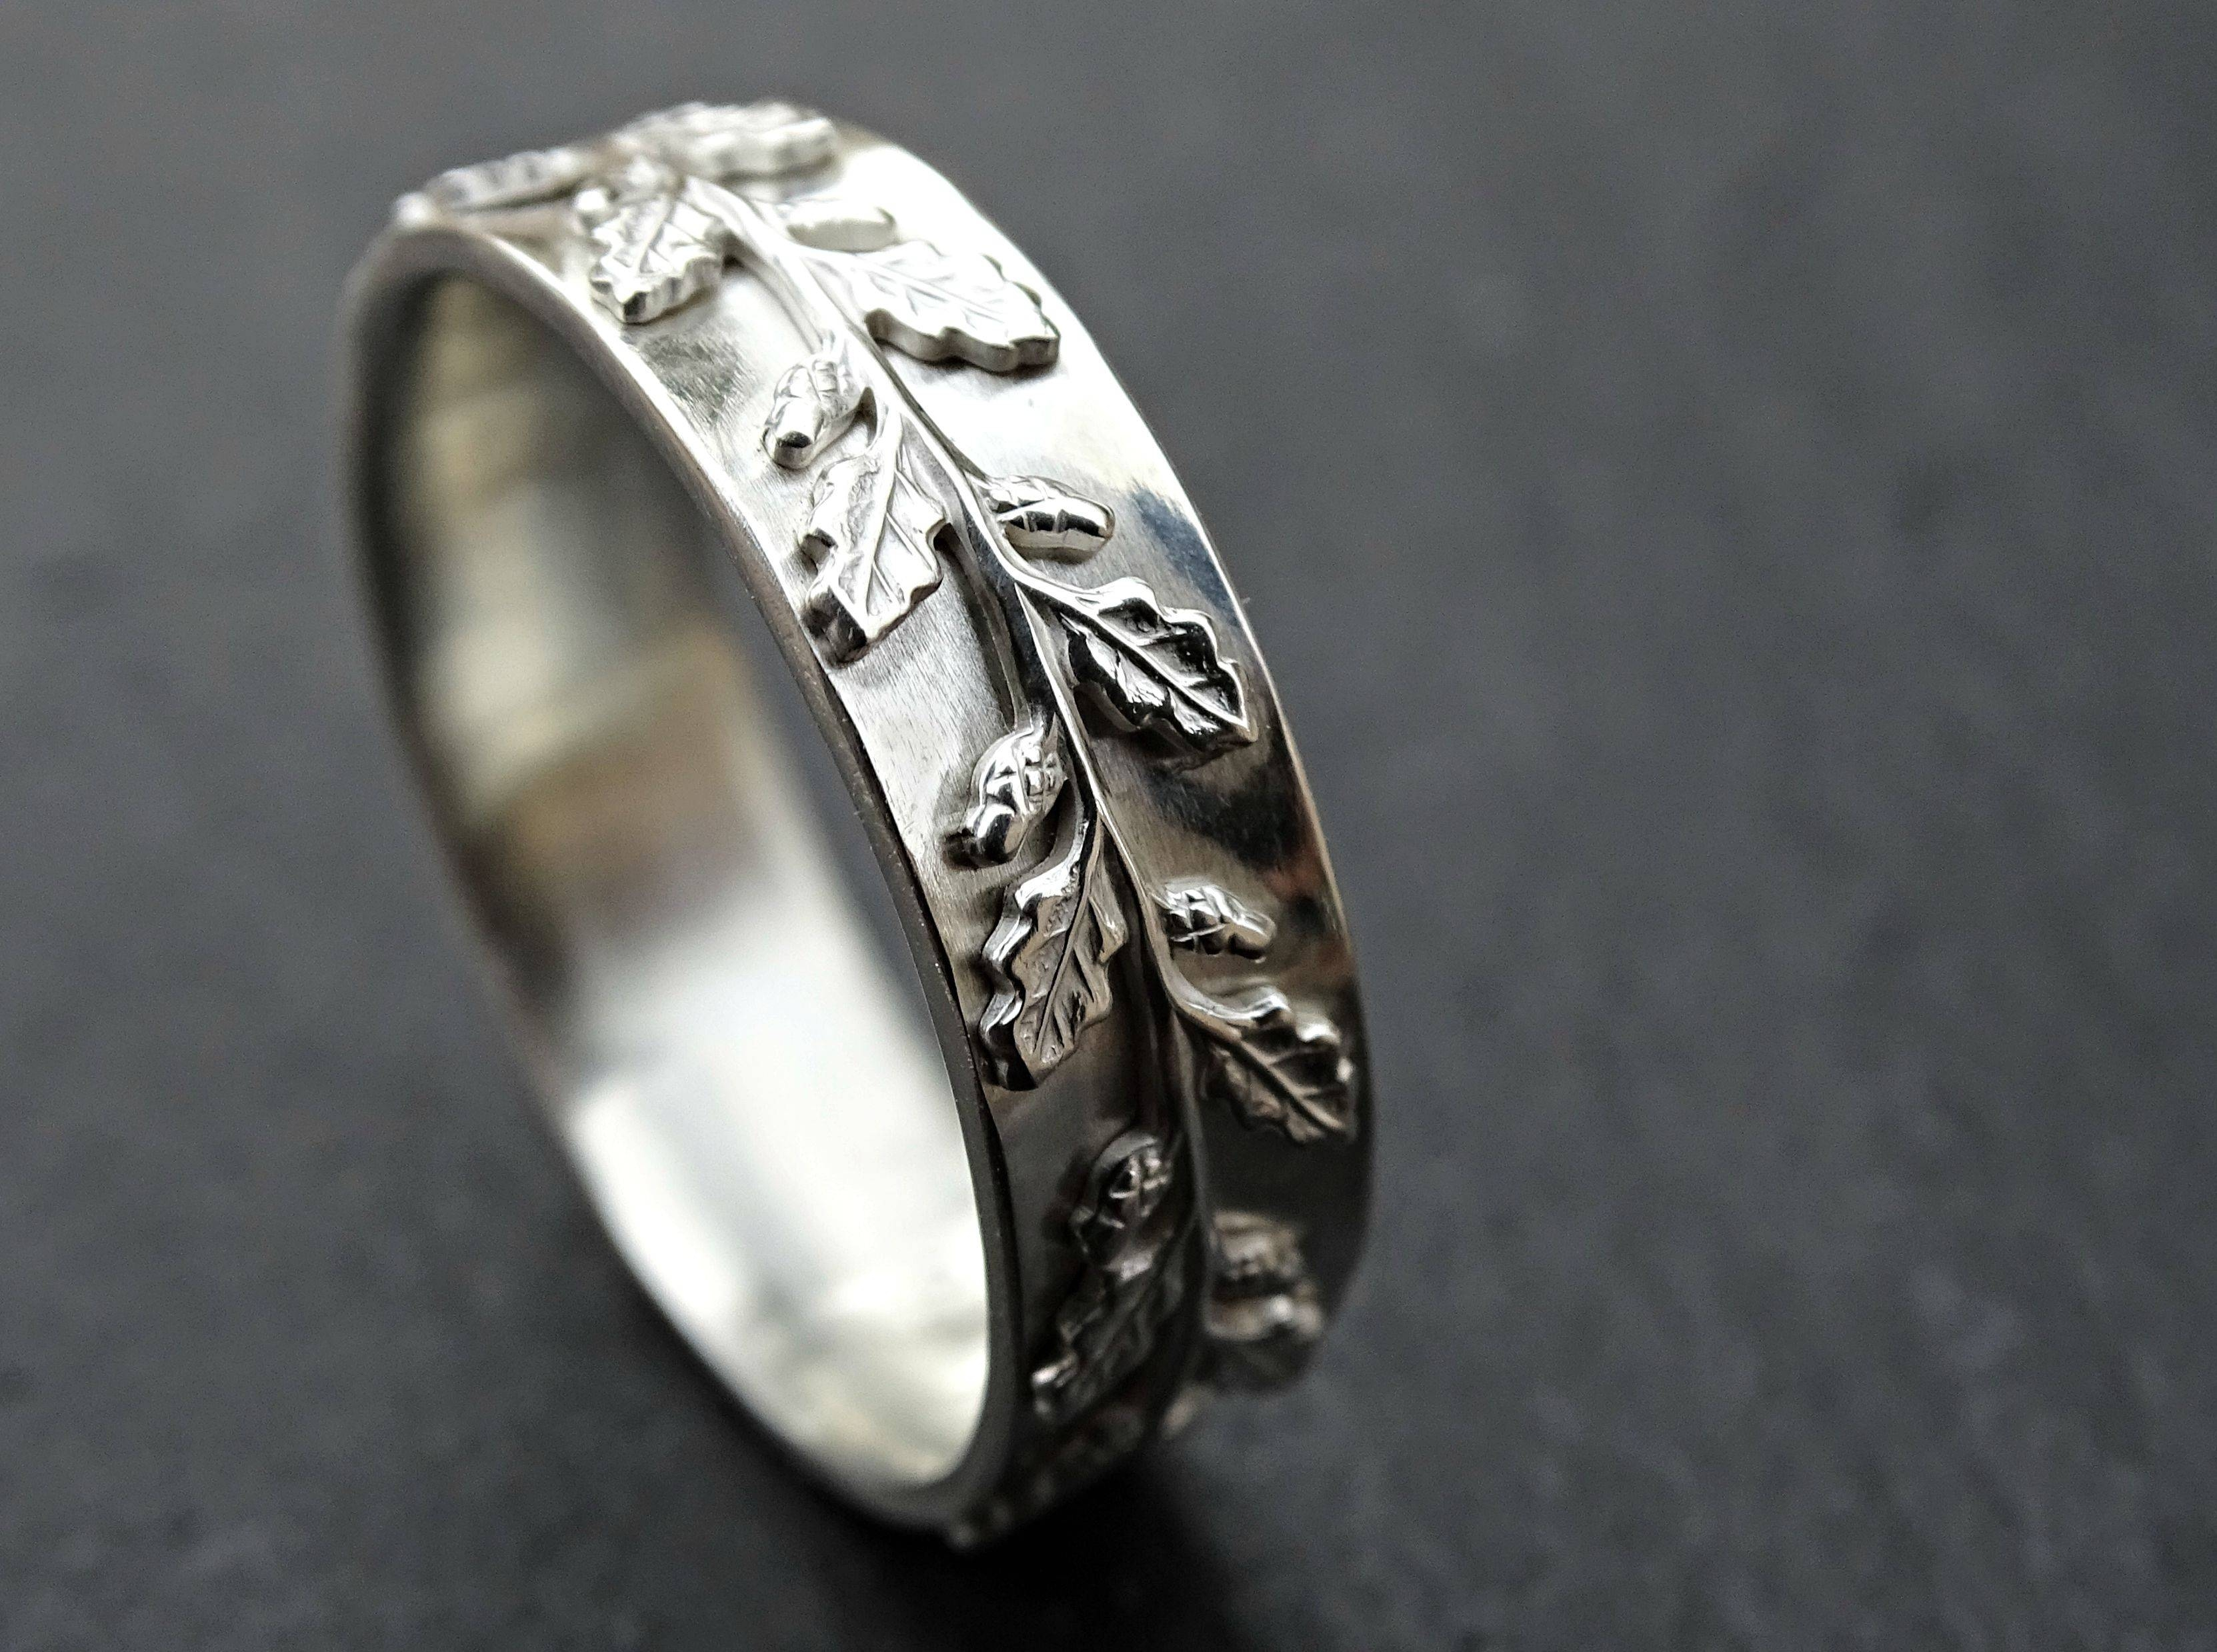 Buy A Custom Made Medieval Wedding Ring Silver, Fairy Tale Wedding Throughout Pagan Engagement Rings (View 2 of 15)